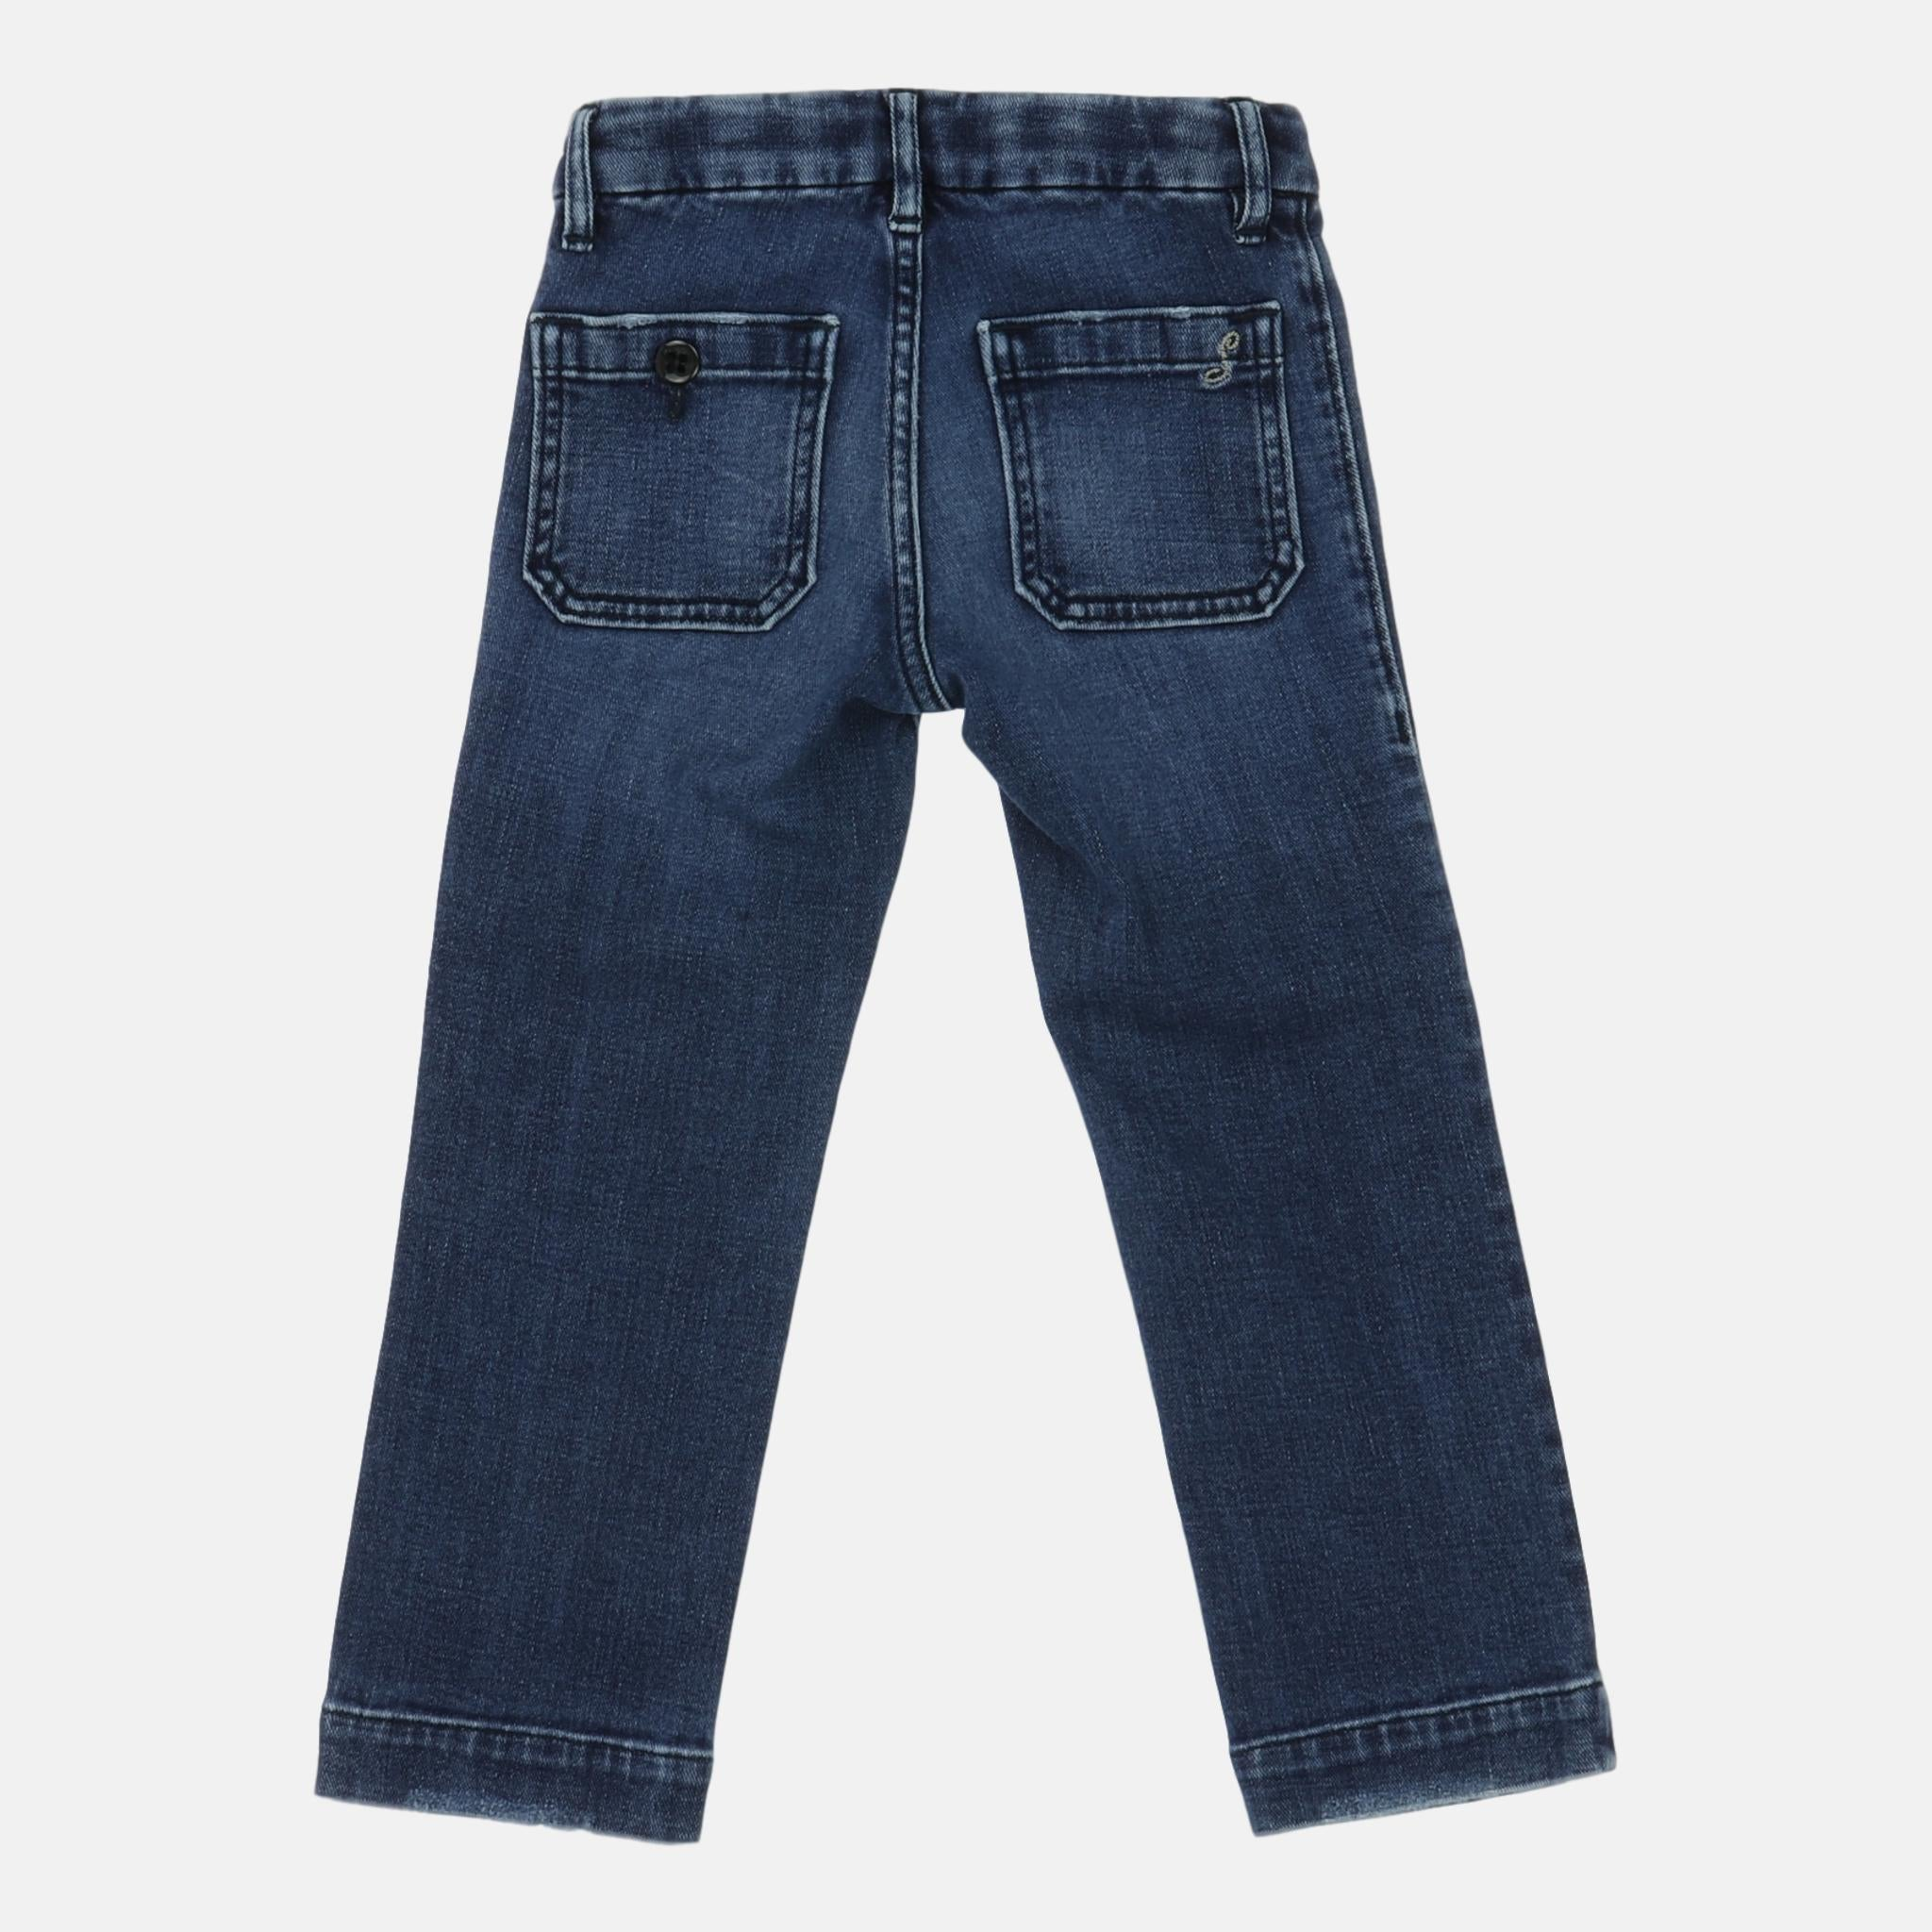 Jeans, 6-7 Years